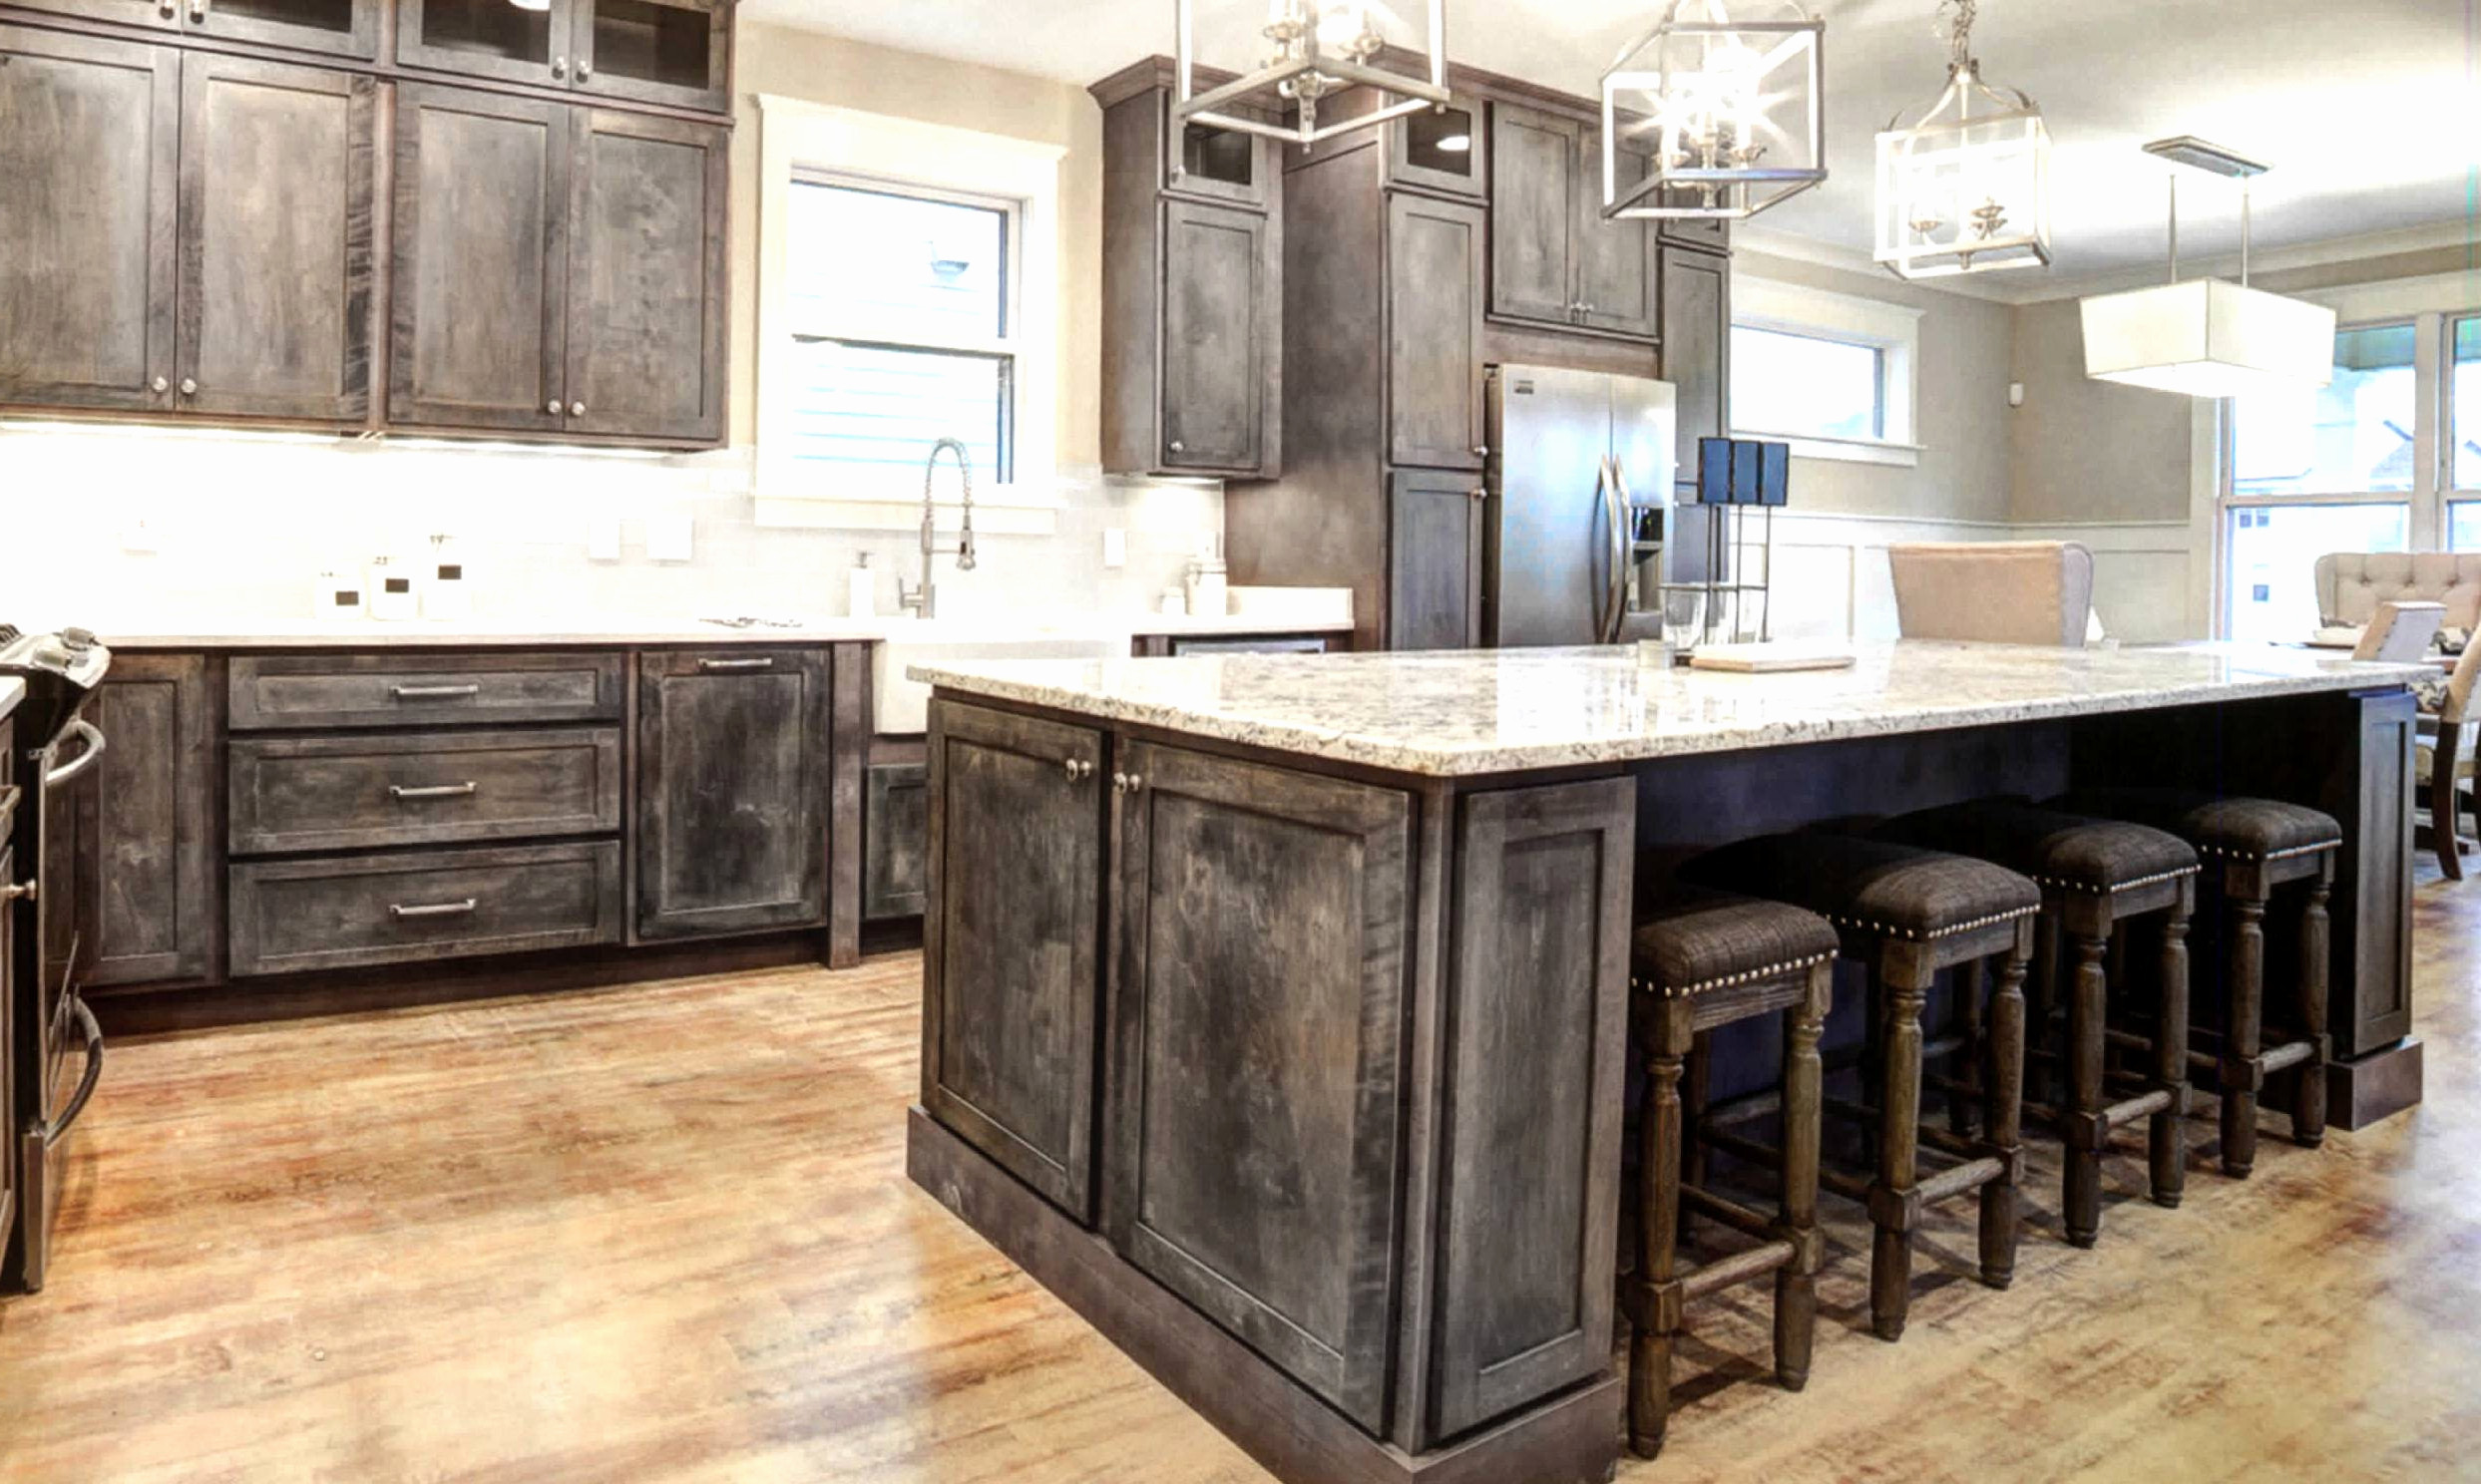 rustic painted hardwood floors of 30 inspirational whitewashed kitchen cabinets pictures regarding whitewashed kitchen cabinets new how to paint kitchen cabinets distressed gray lovely kitchen rustic